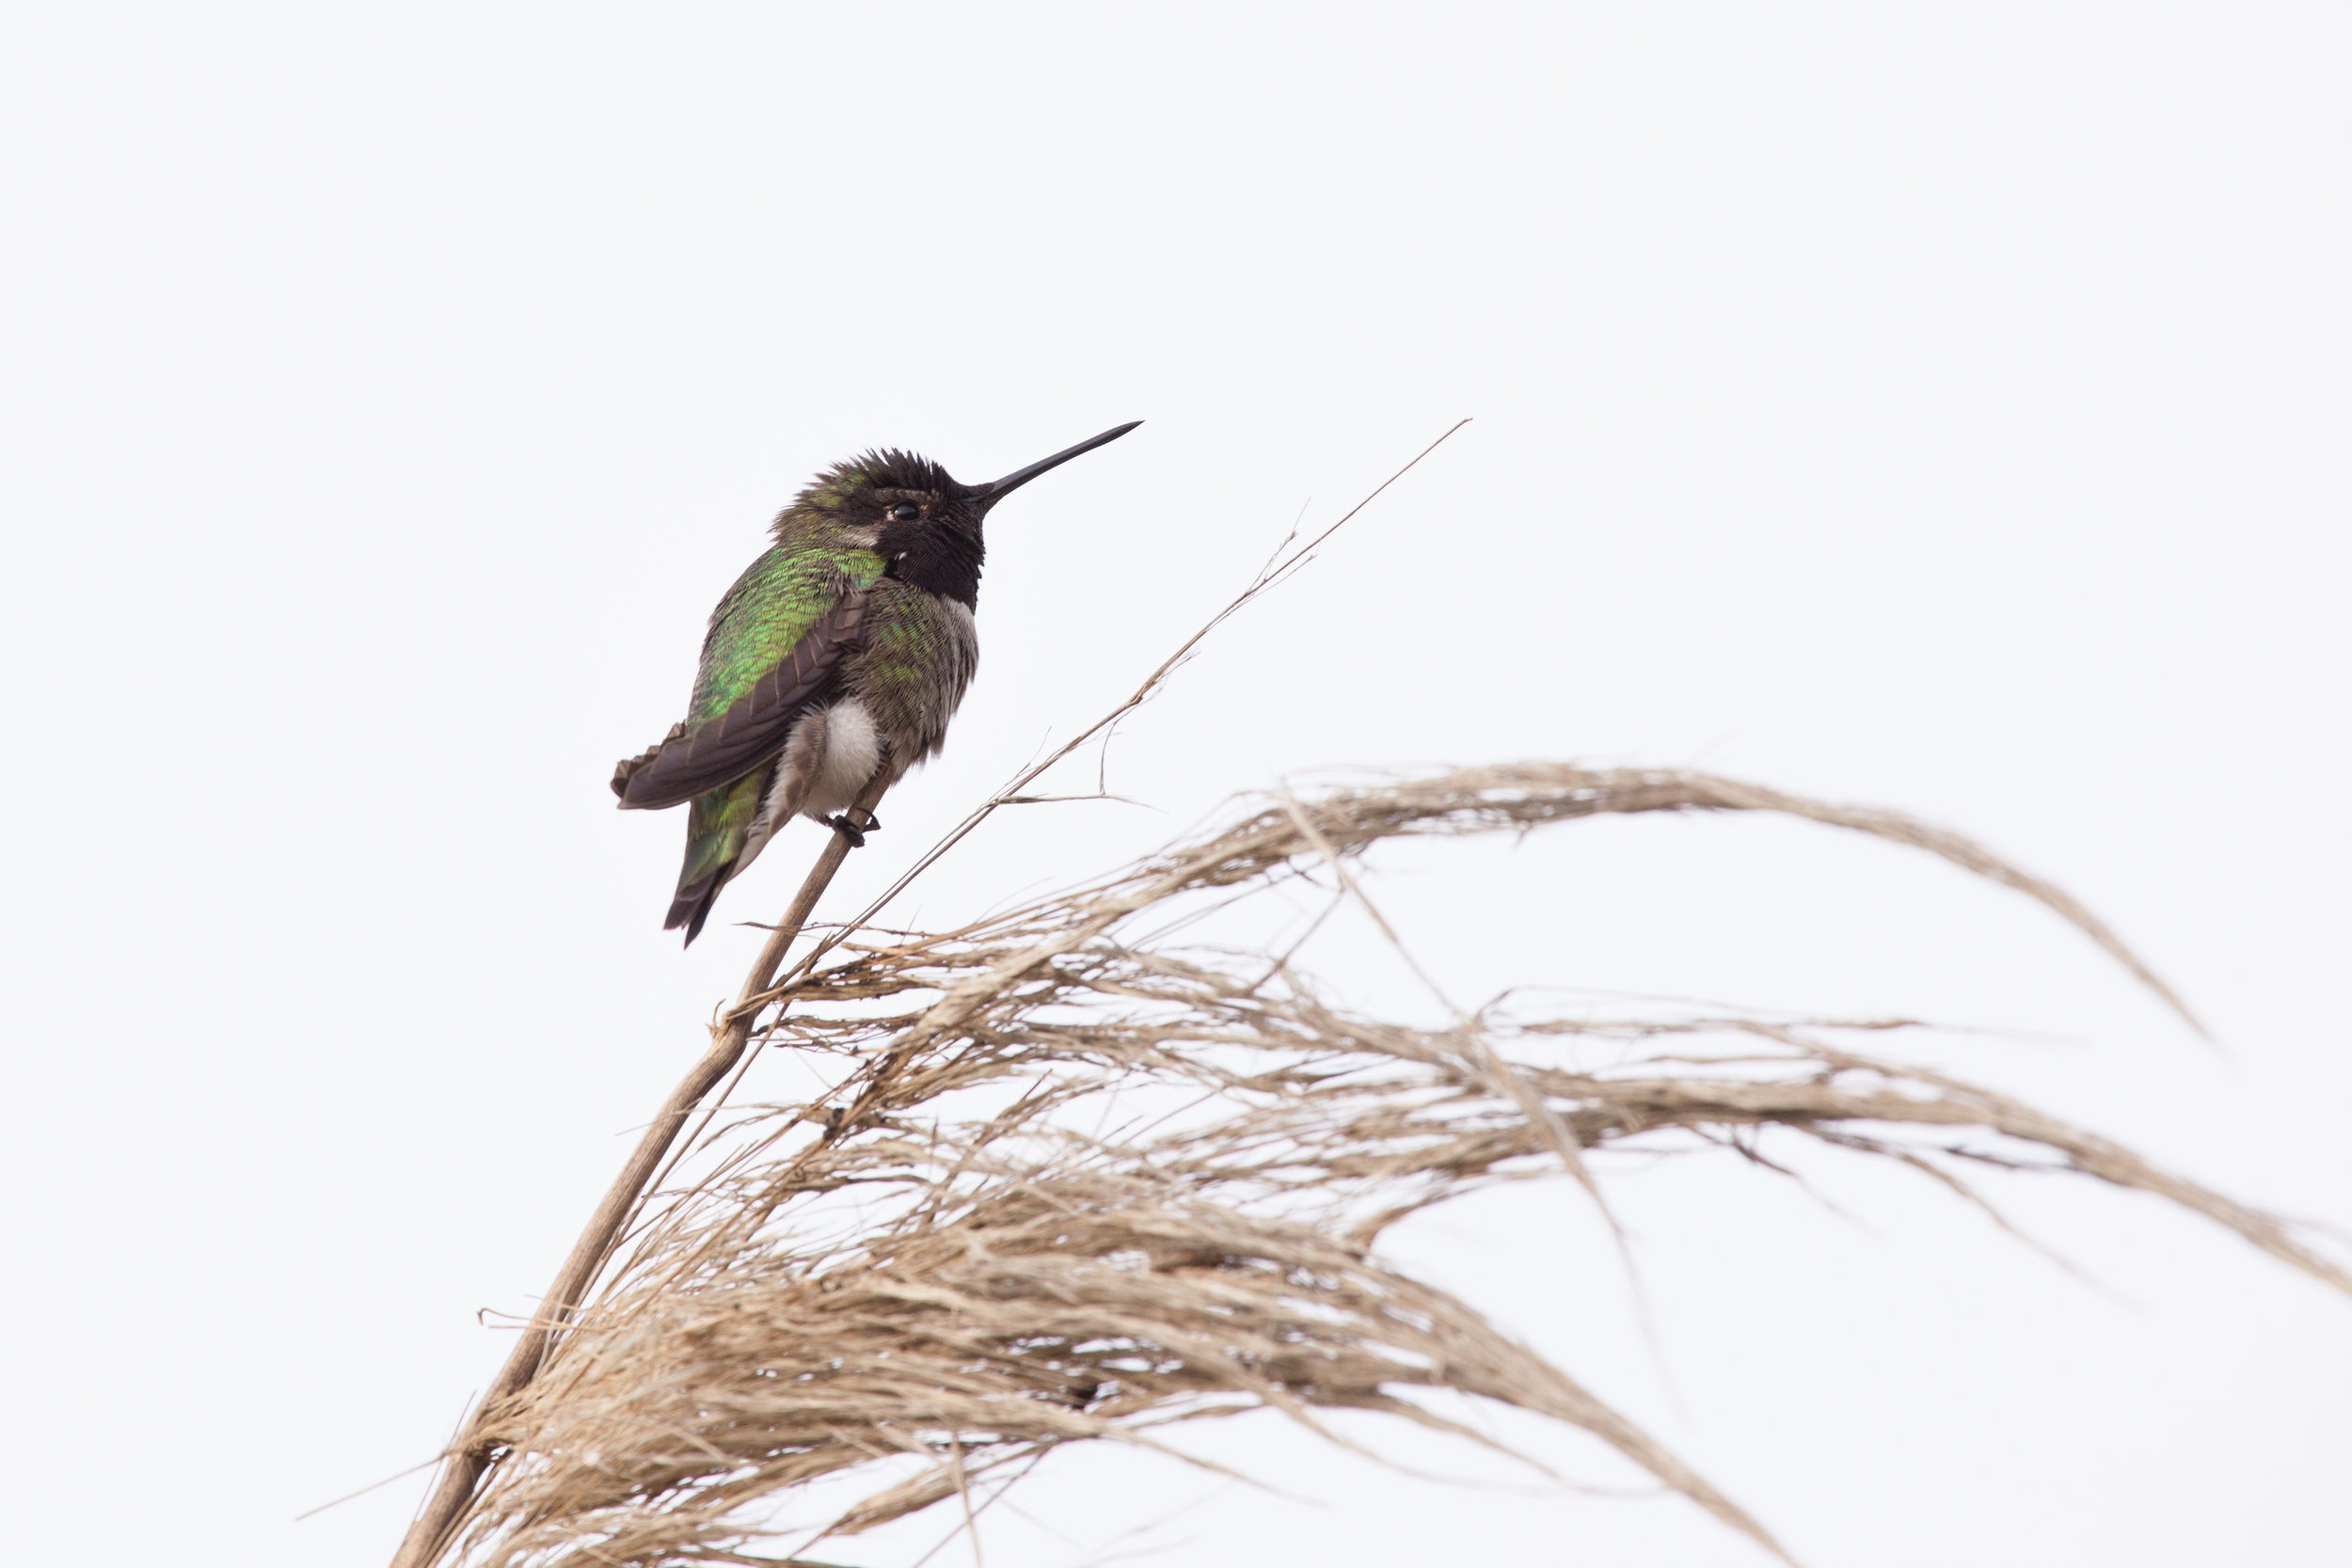 20171225_AlanToth_hummingbird.jpg